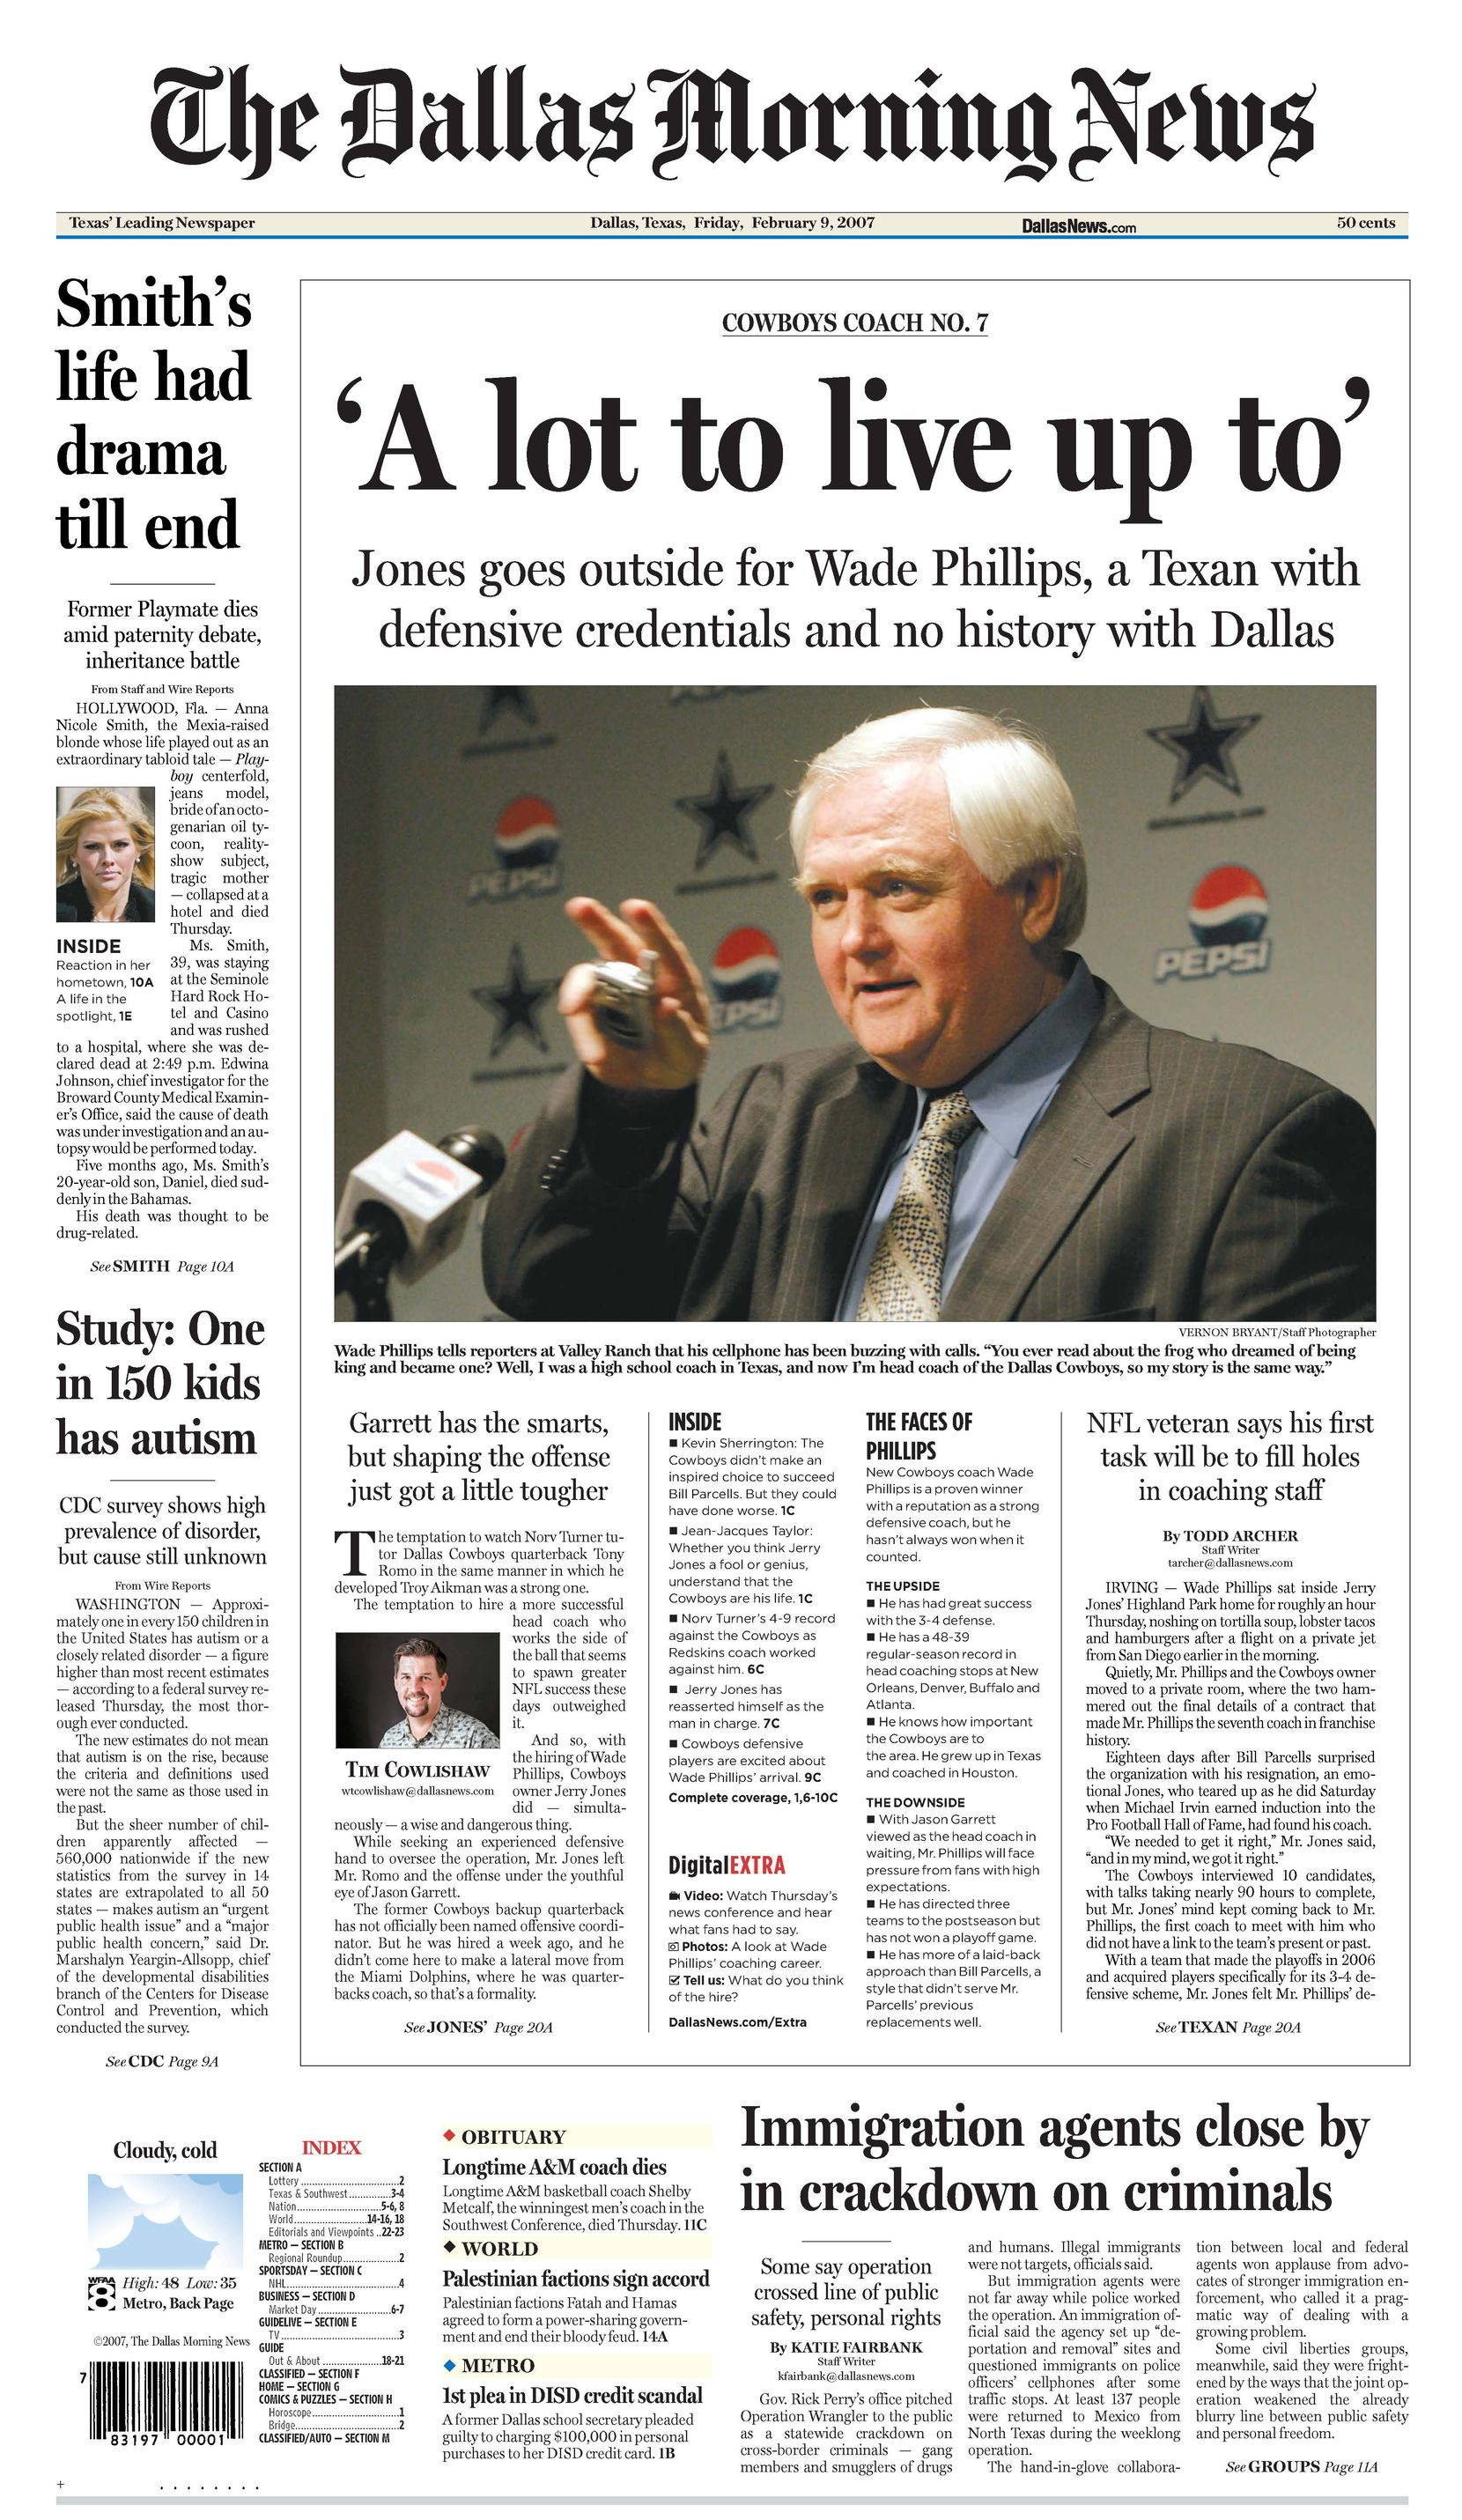 Front page Feb. 9, 2007. Wade Phillips is the new coach in 'A lot to live up to'.